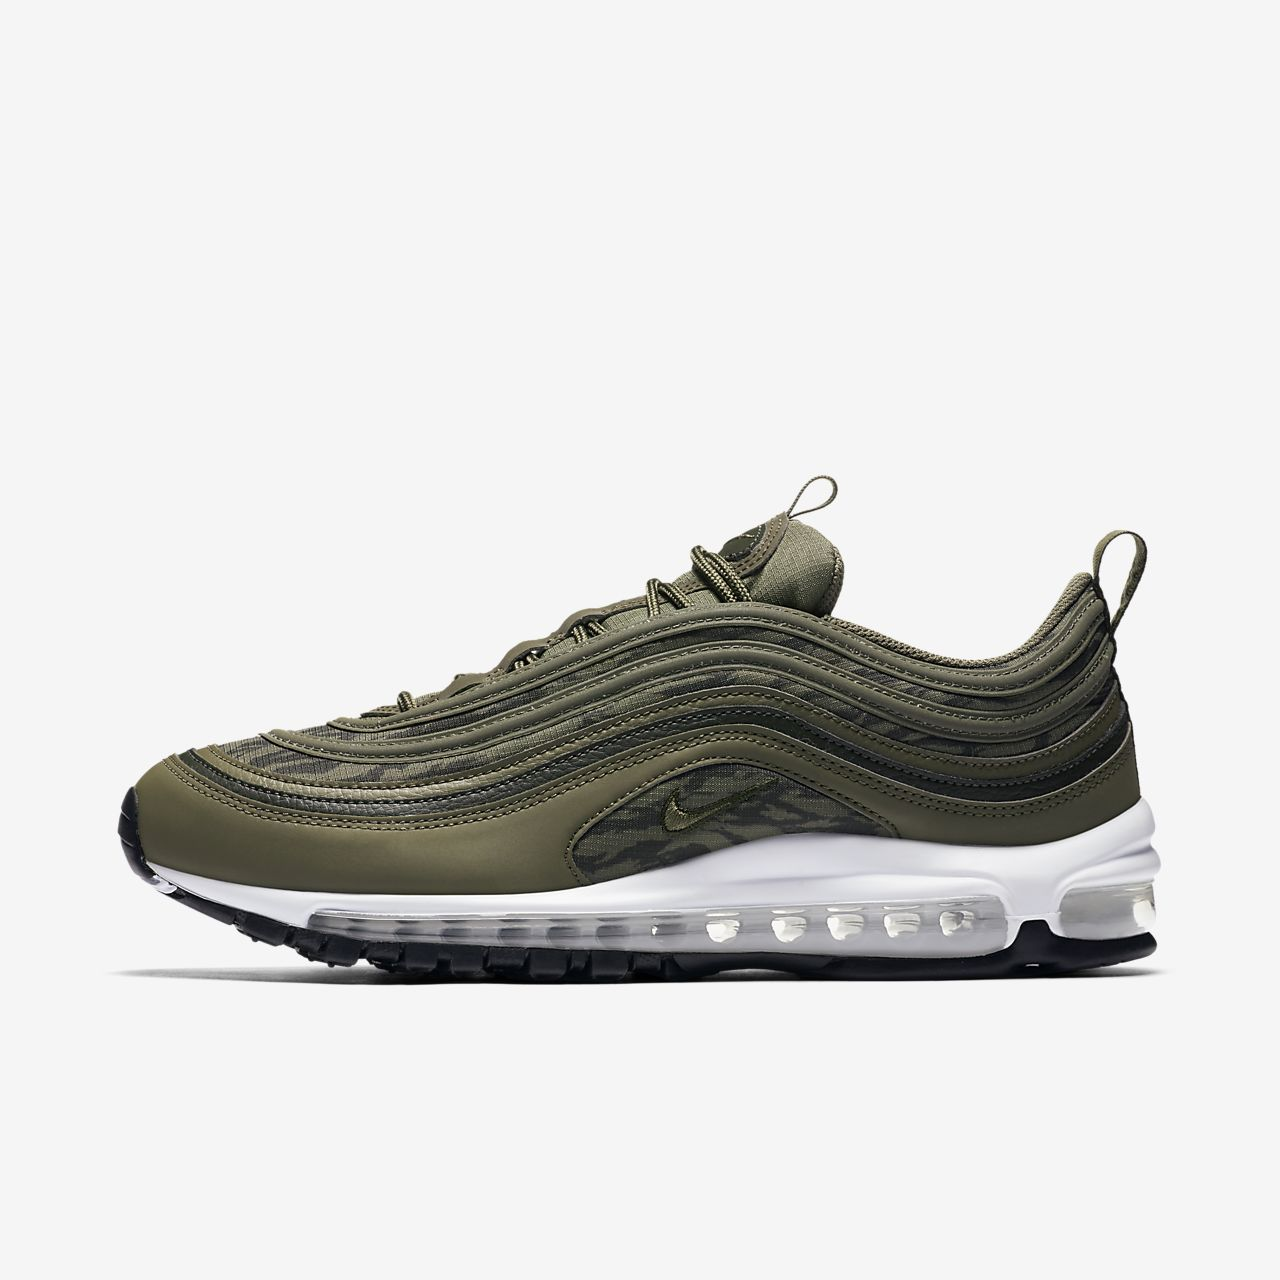 the air max 97 silver bullet nz